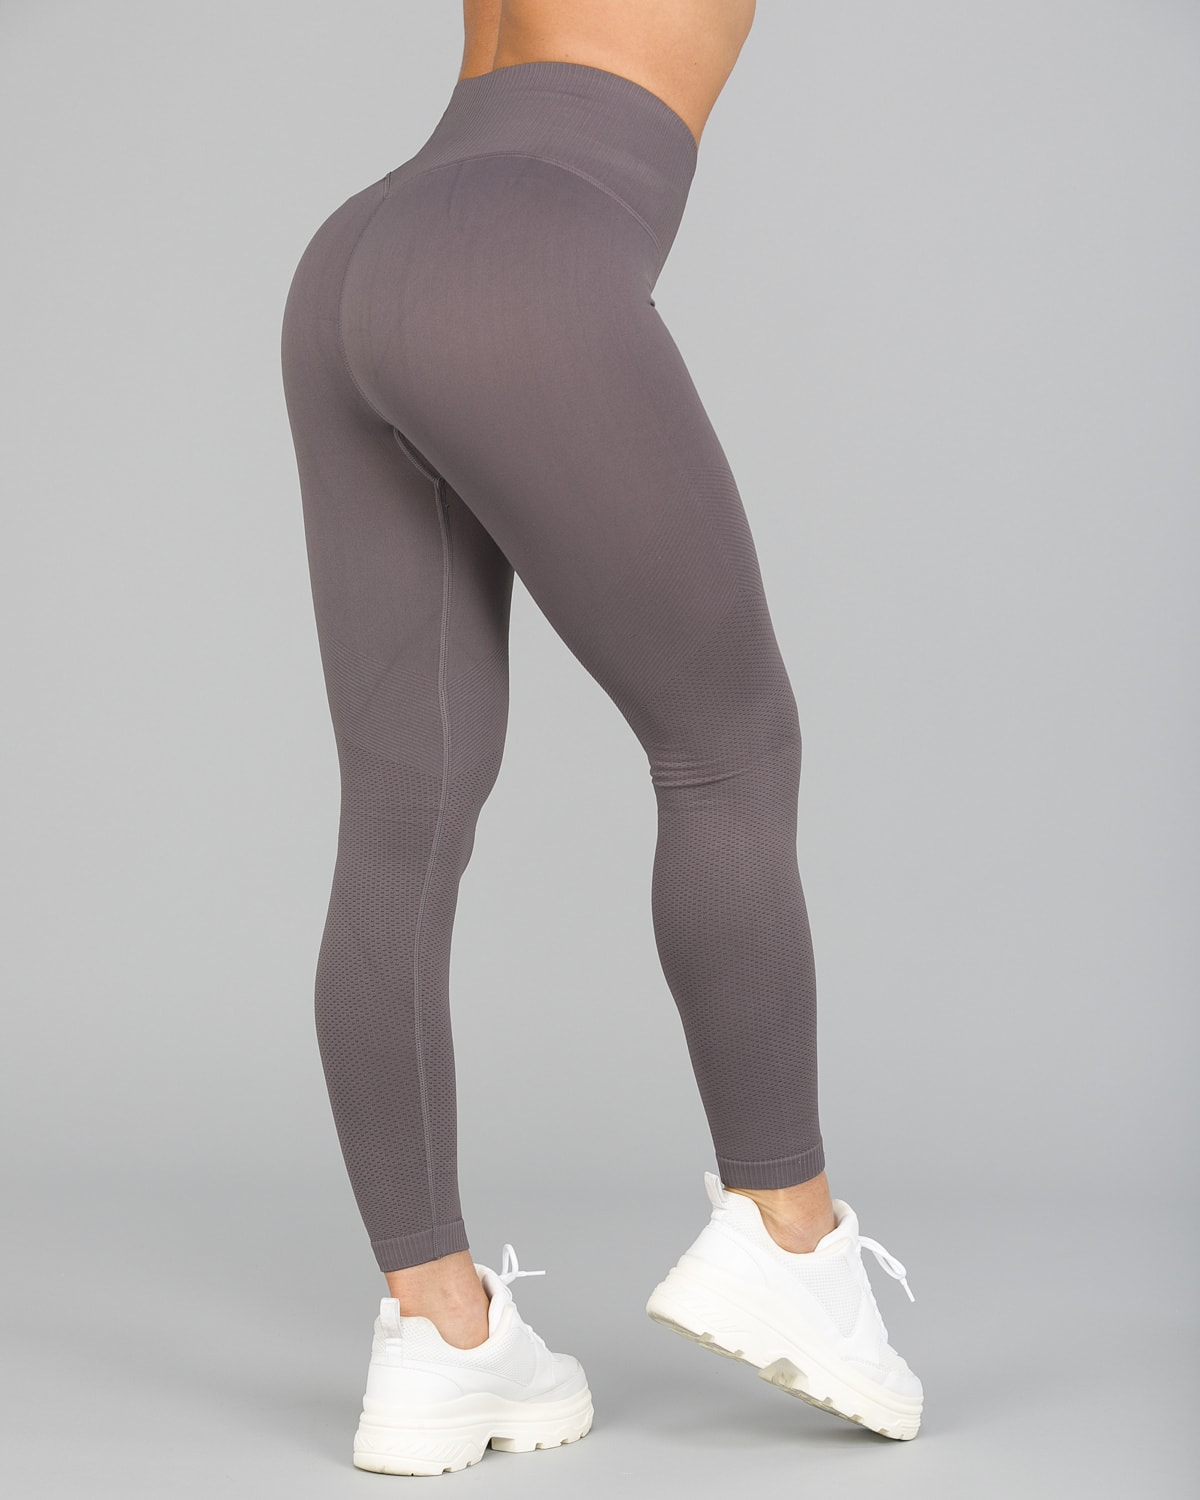 Aim'n Concrete Attention Seamless Tights10